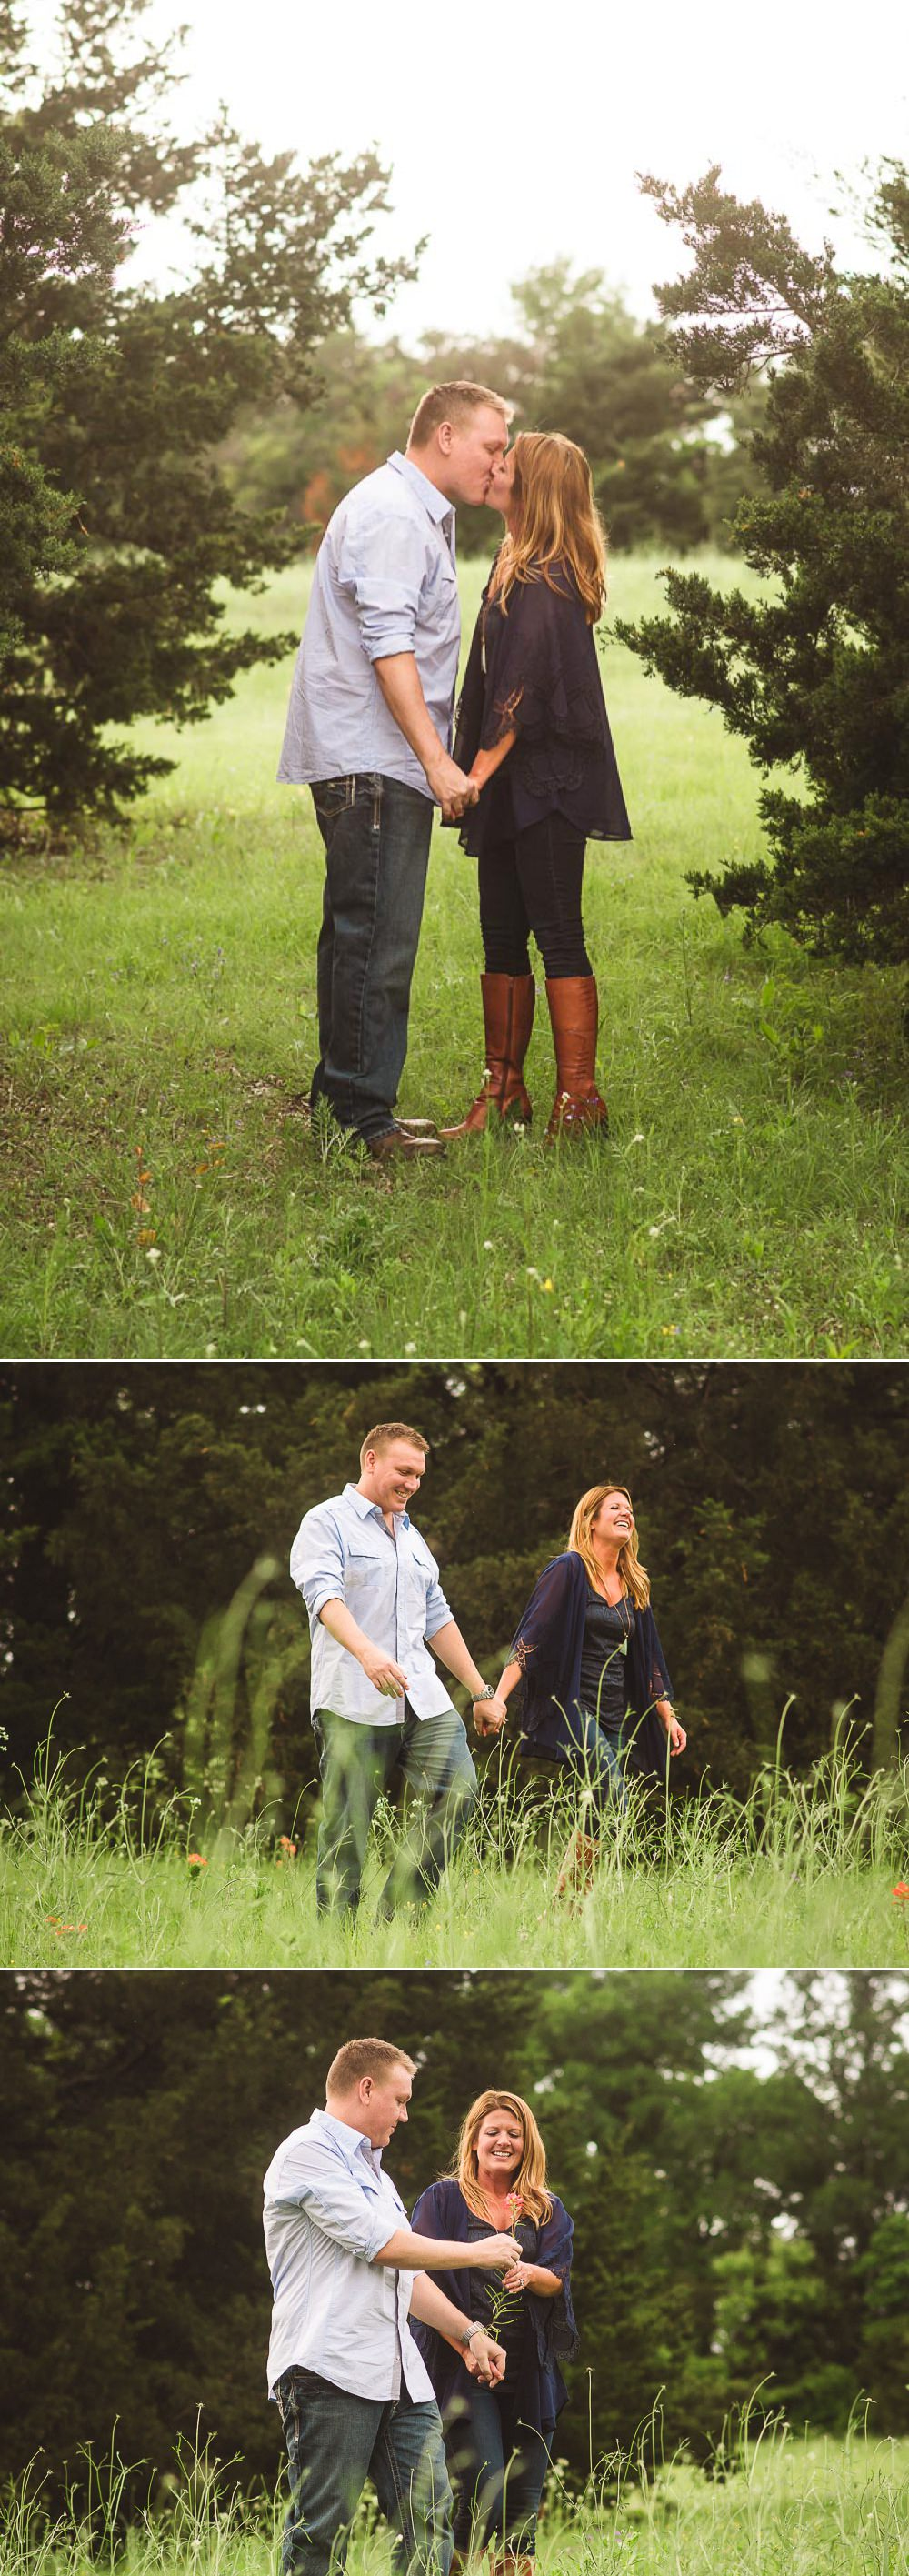 Daniel and Cassy Engagement Session 3